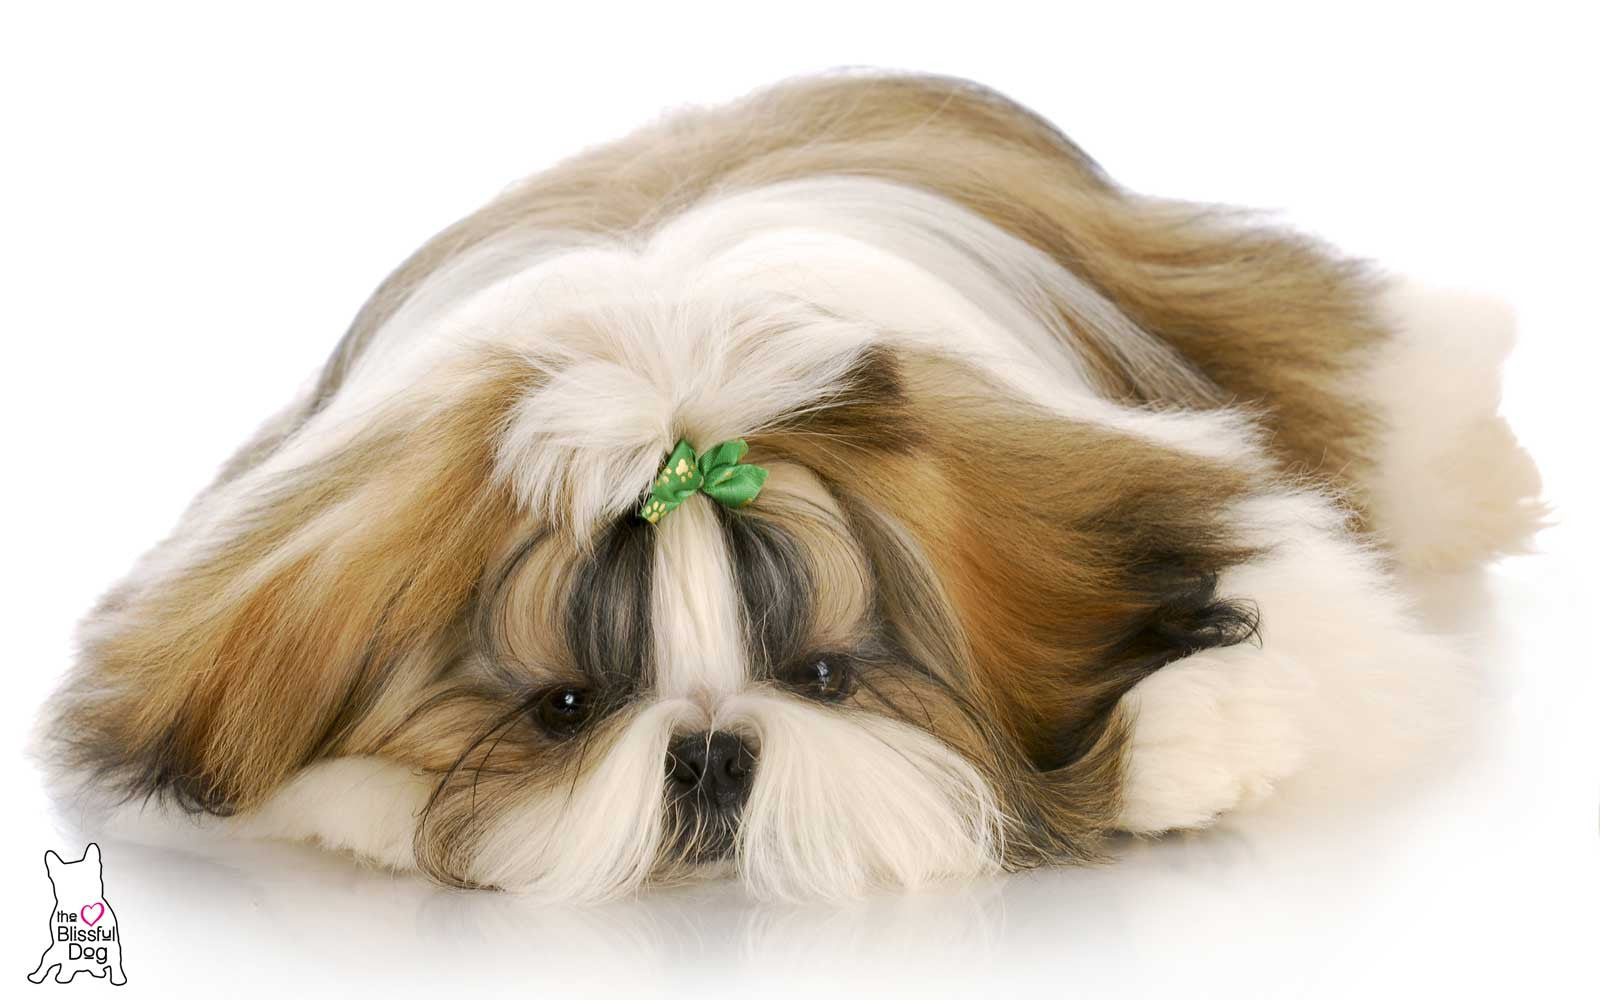 shih tzu puppy afraid